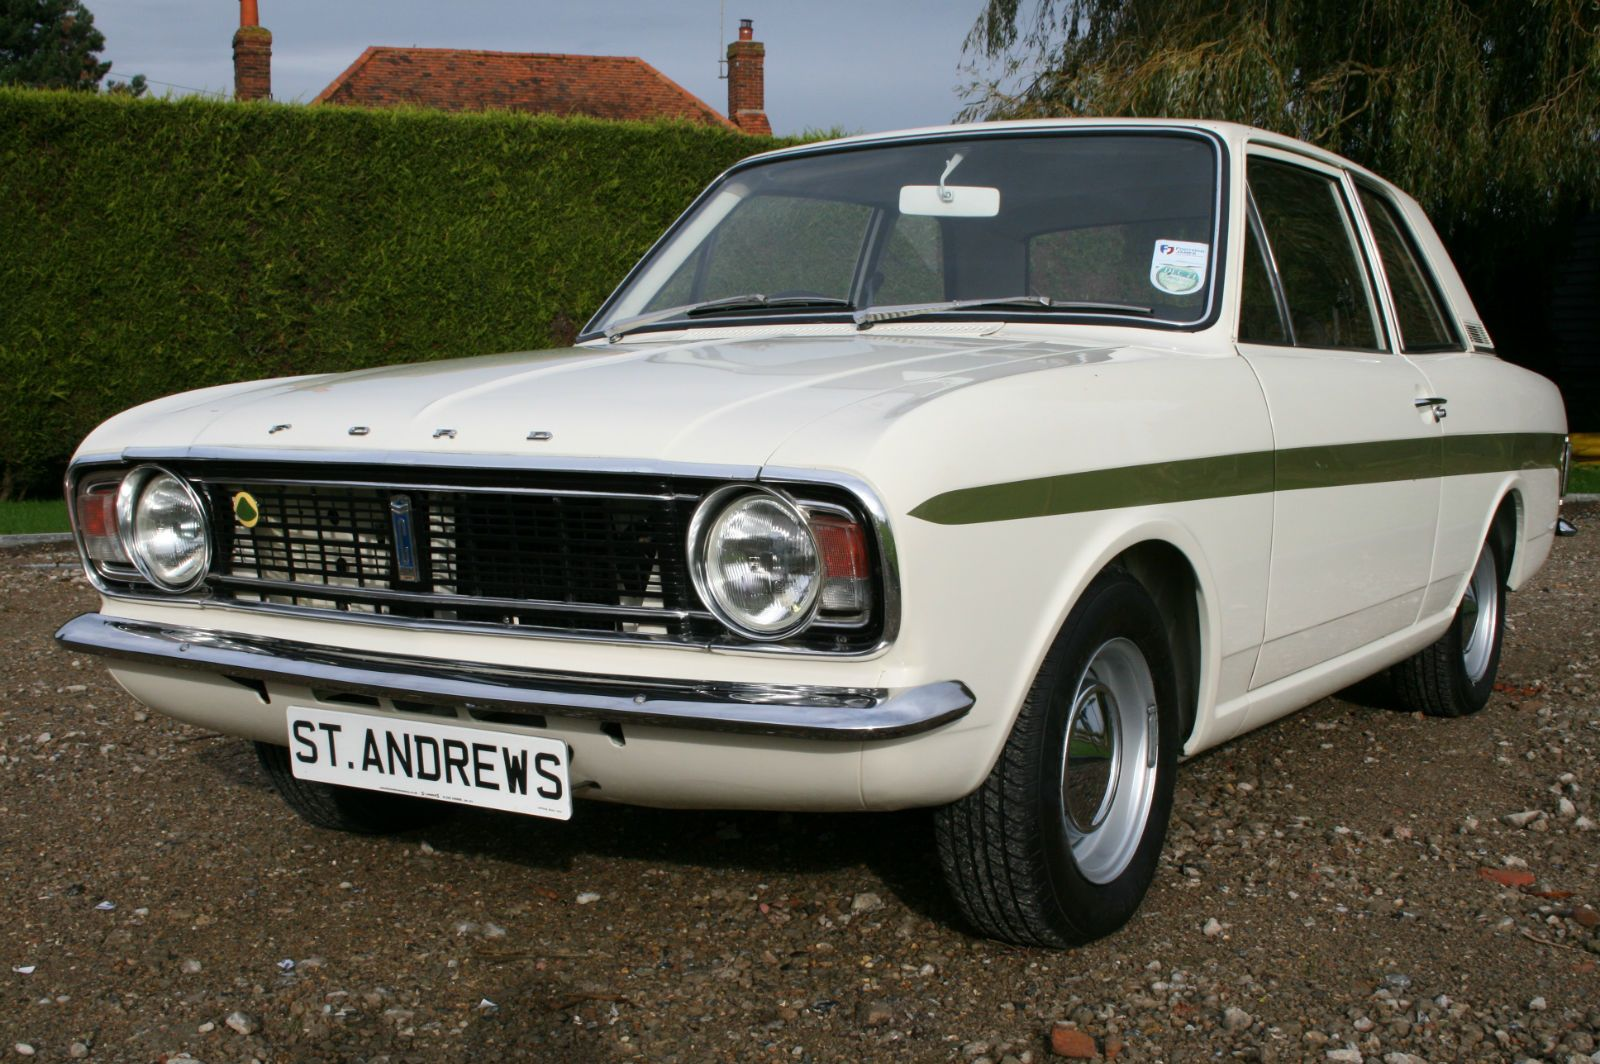 Ford Lotus Cortina Mk2 Professionally Nut Bolt Restored Classic Fords For Sale Triumph Cars Car Ford